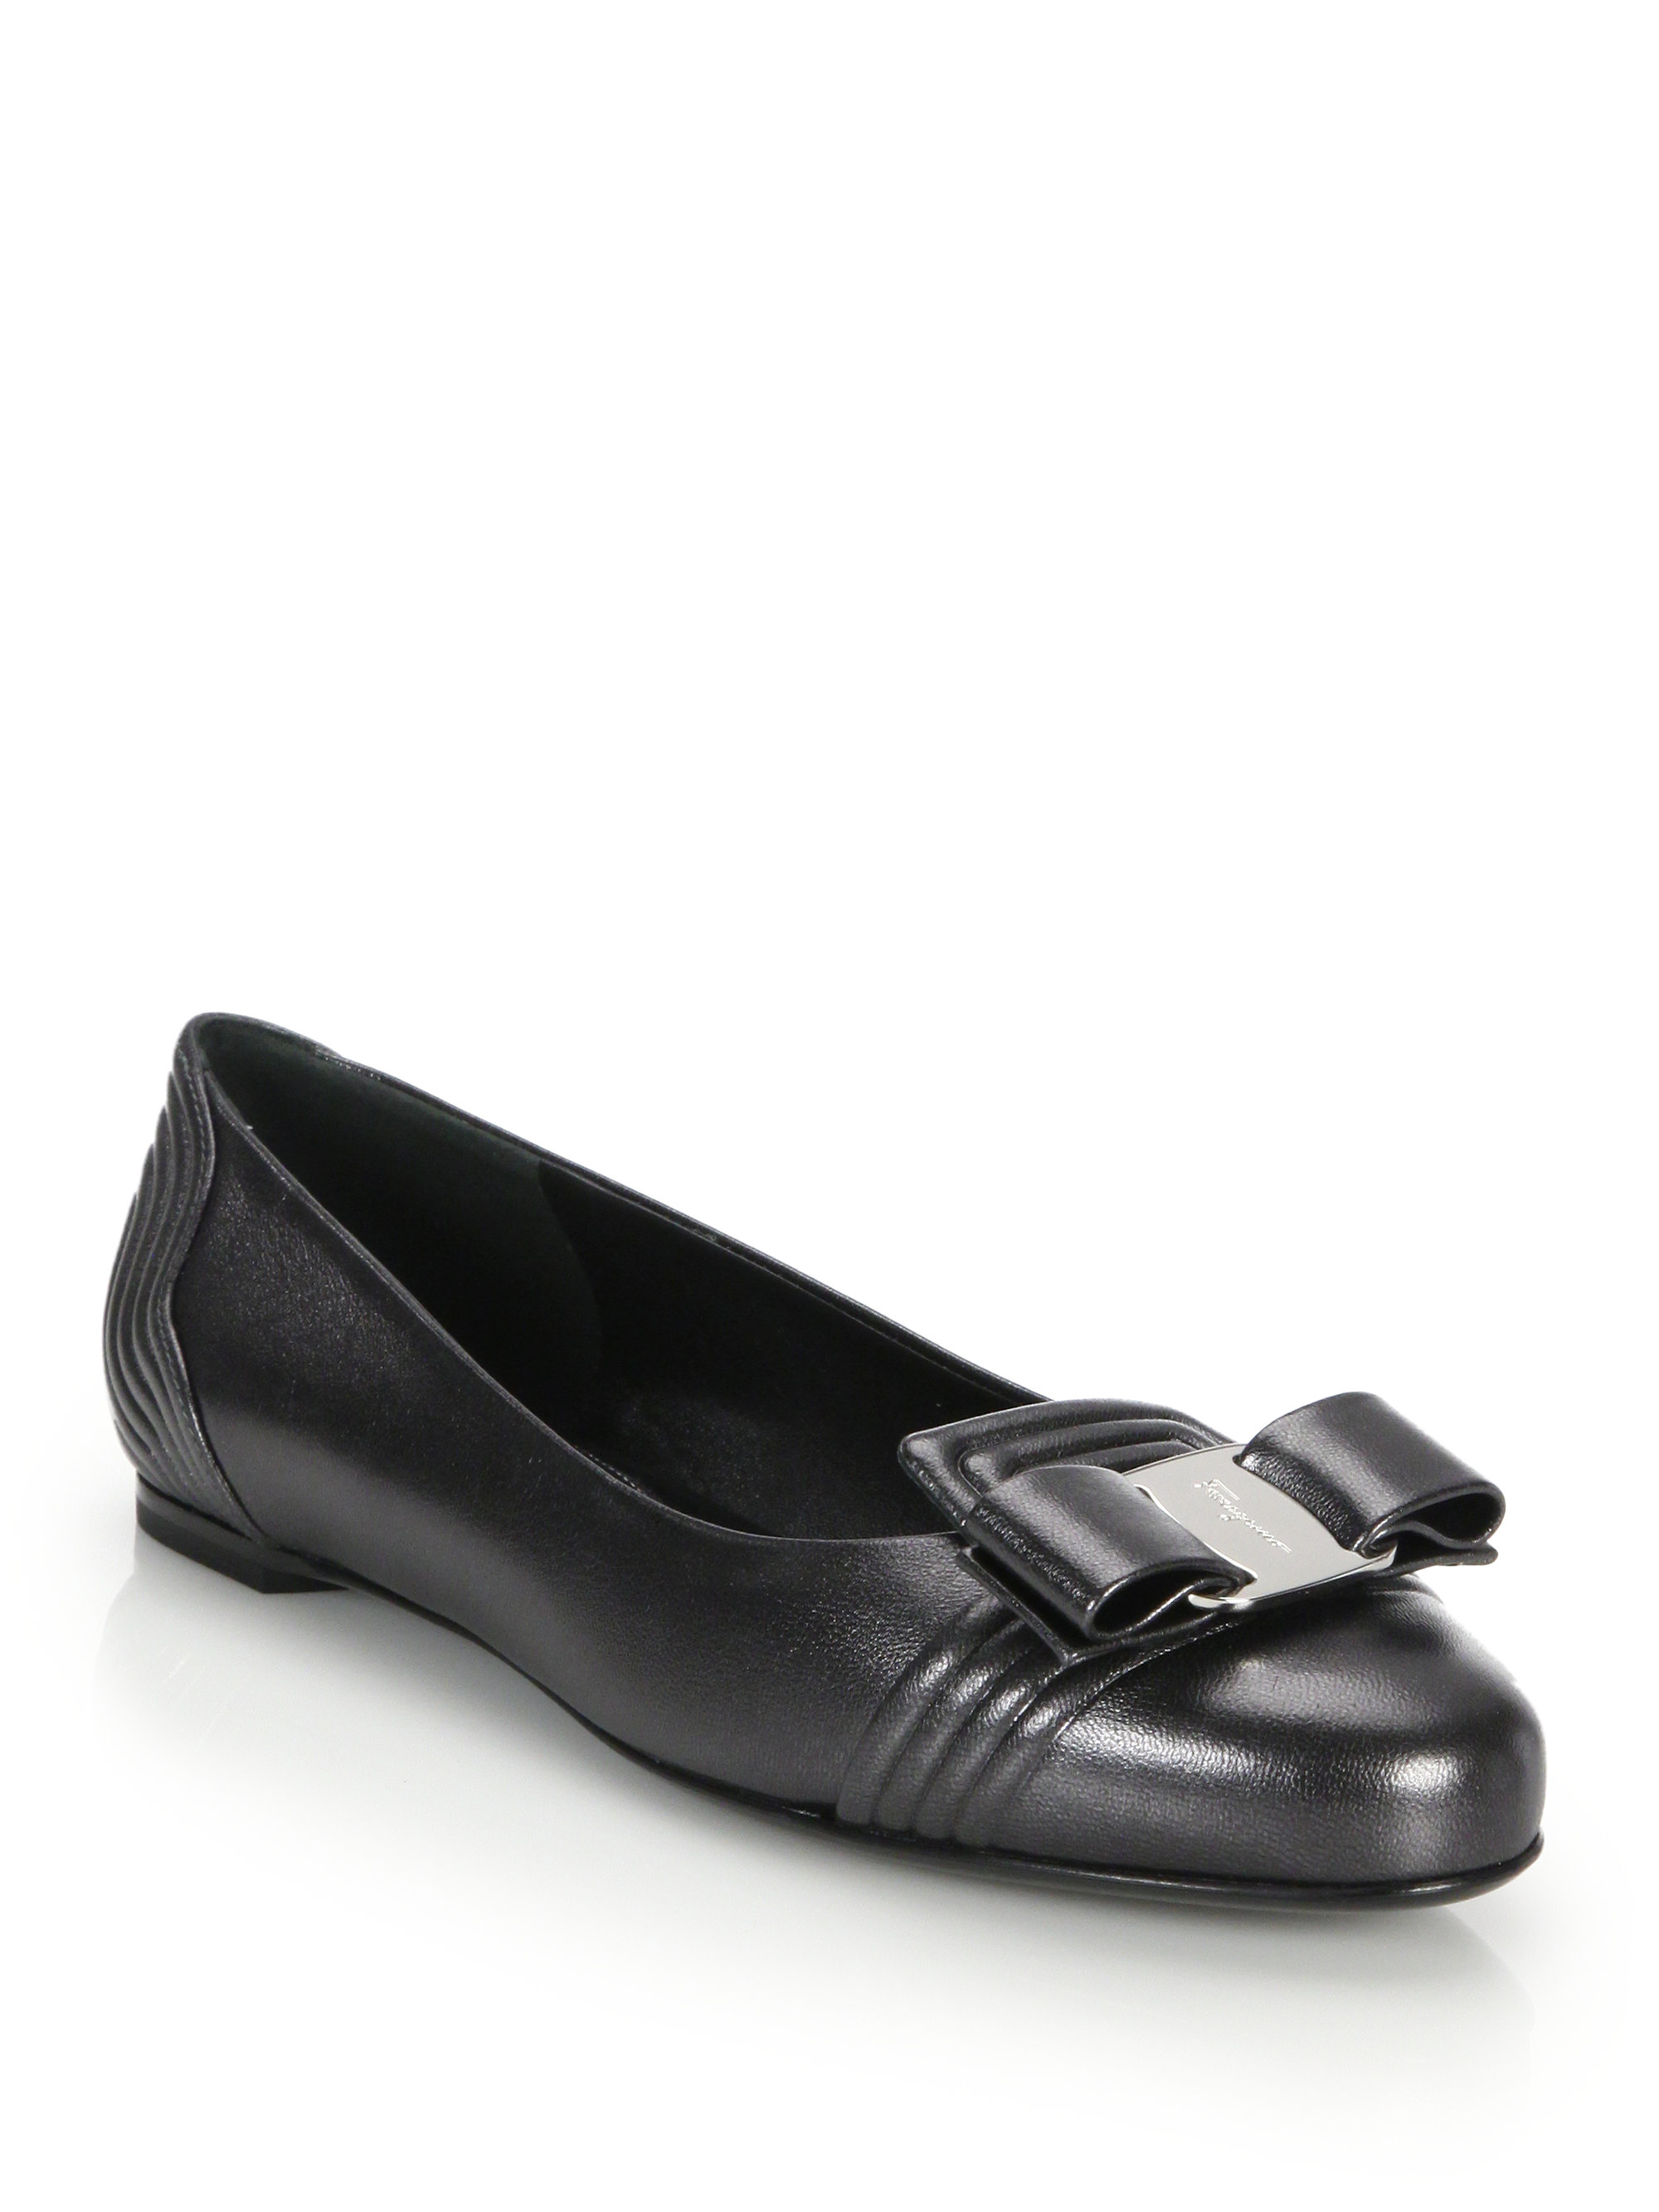 Ferragamo Lulu Embossed Leather Bow Flats in Gray - Lyst